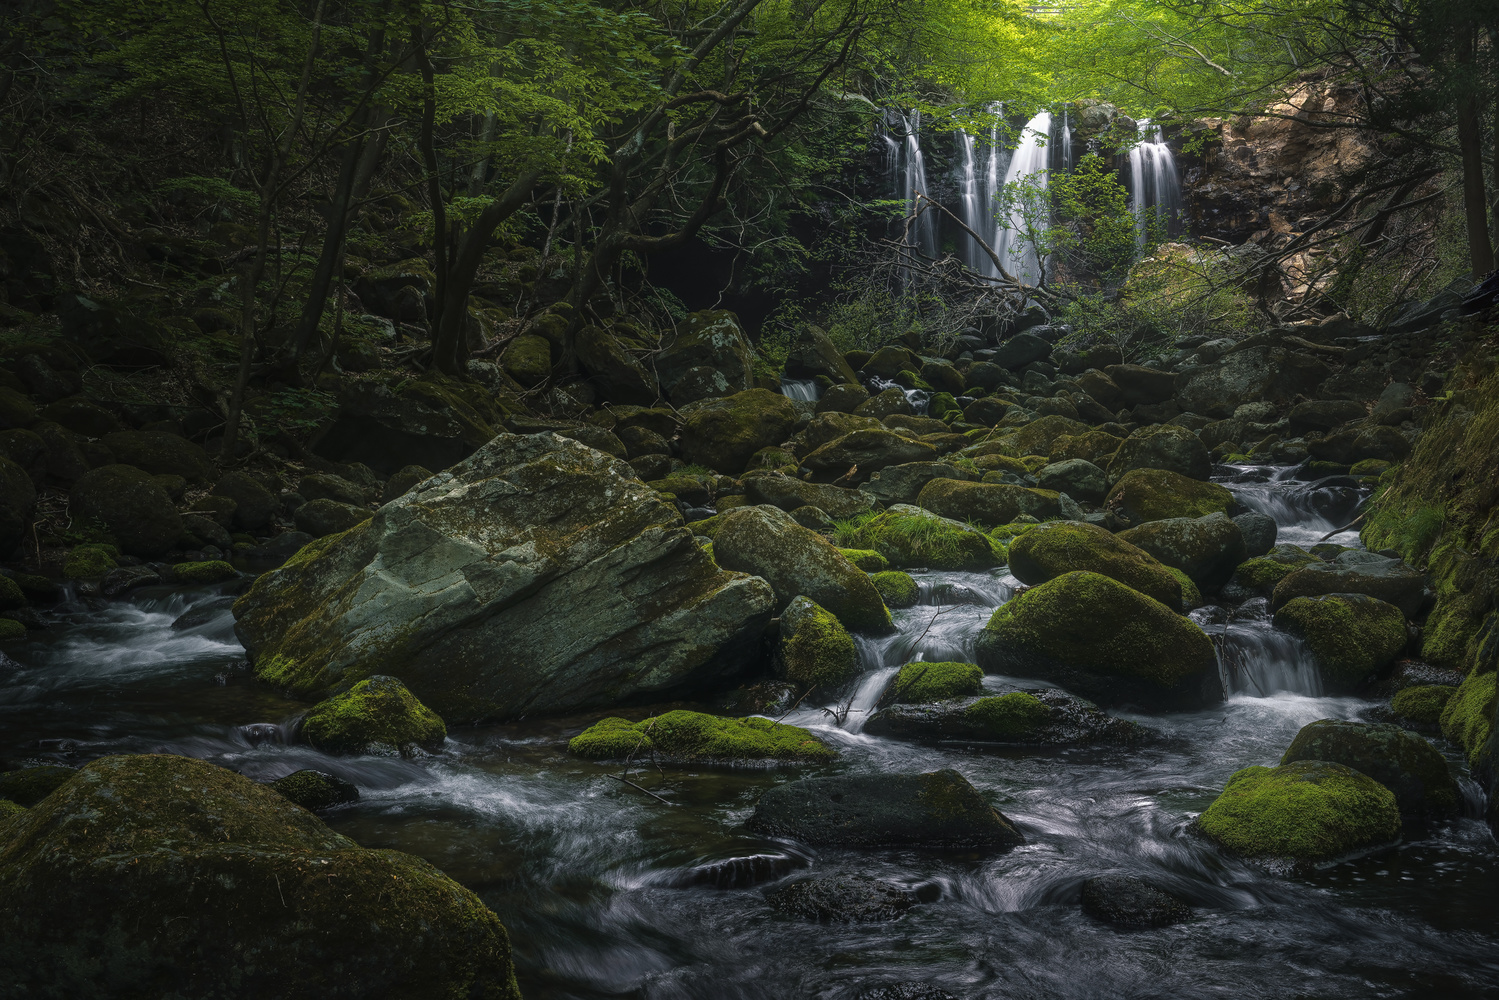 Waterfall in the forest by Shumon Saito